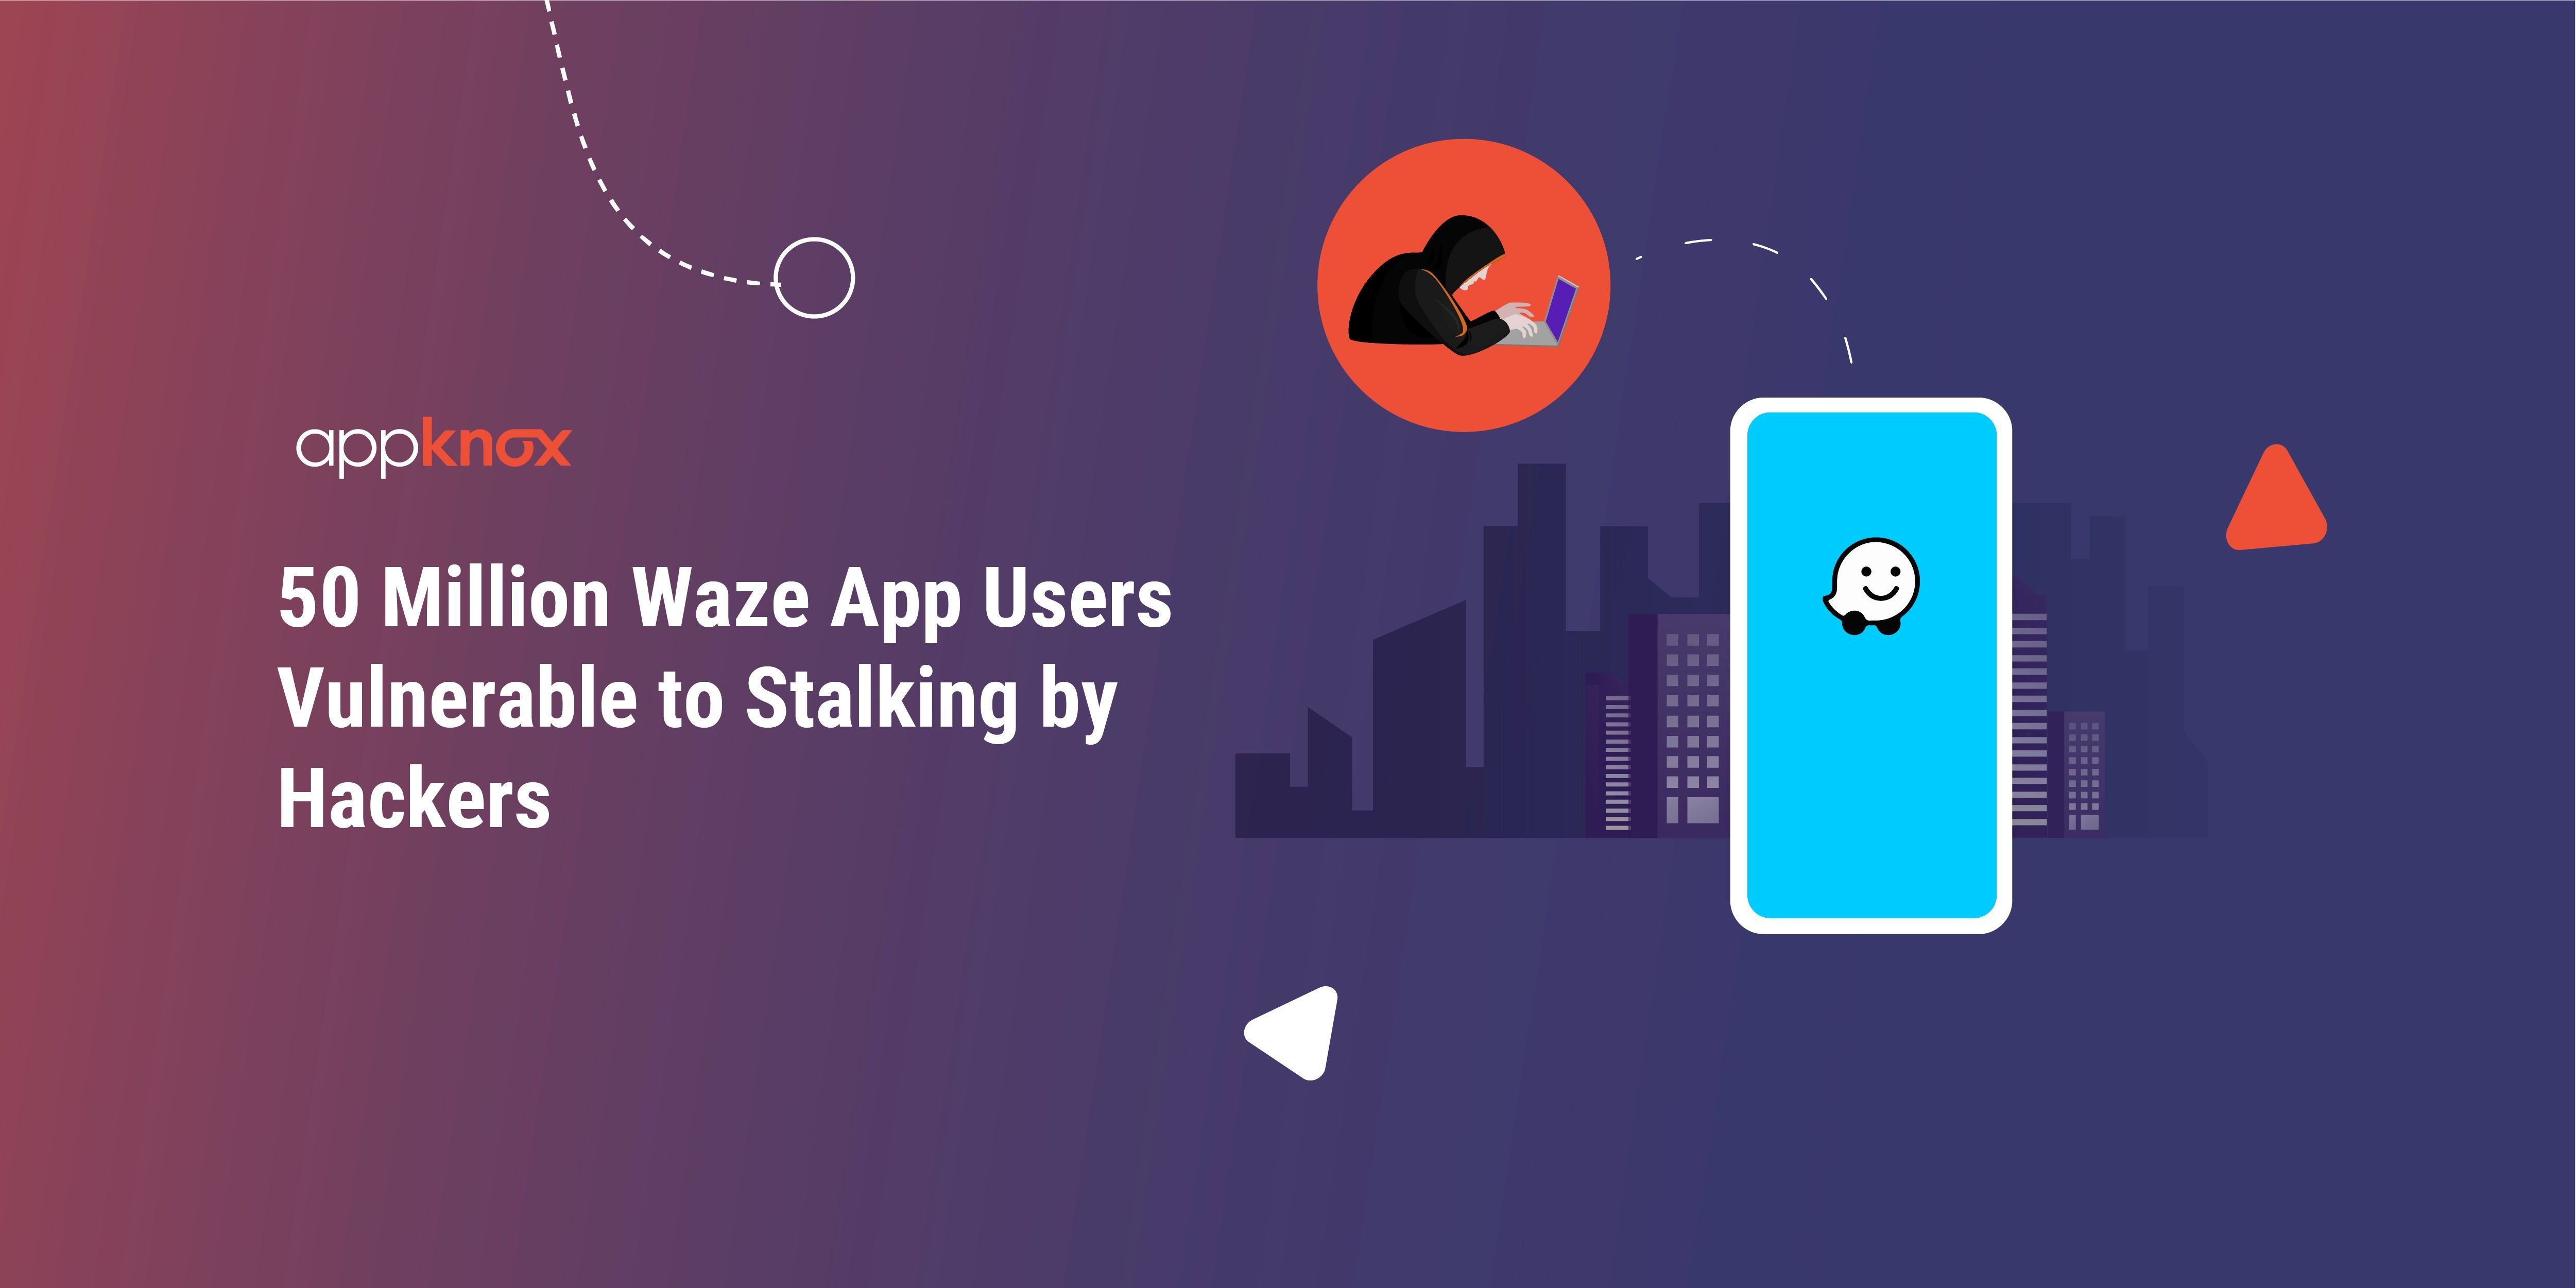 Waze App Users Vulnerable to Stalking